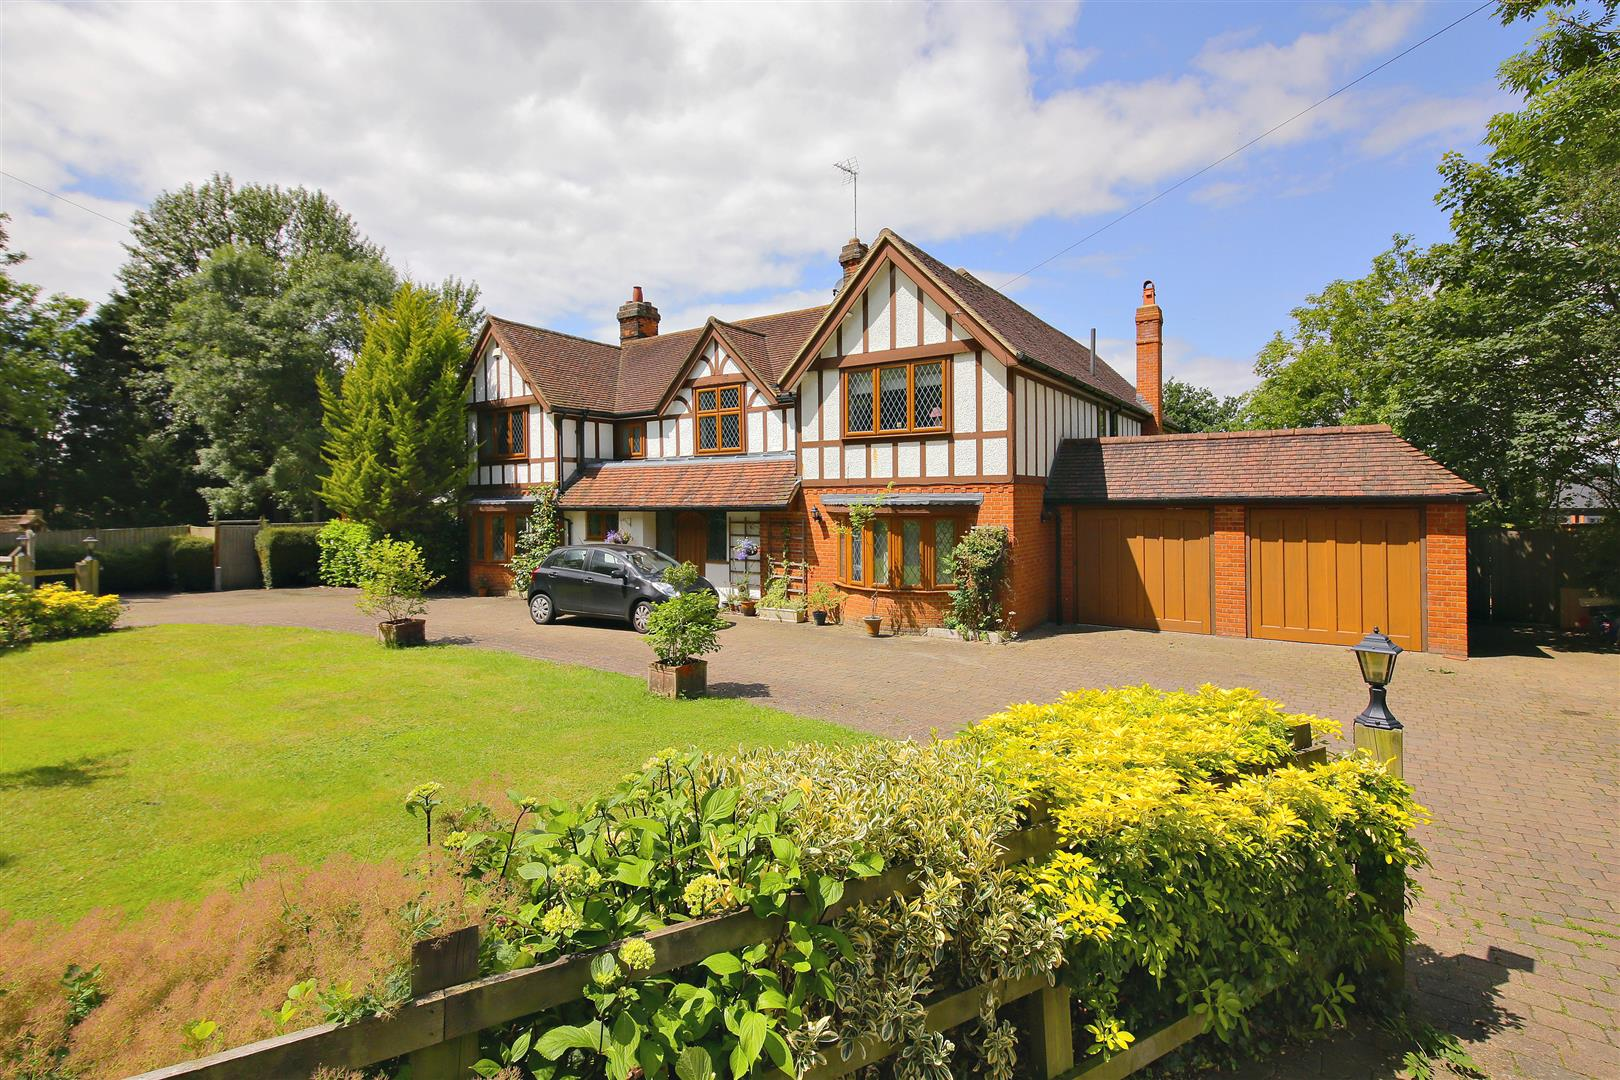 6 bed to rent in Elstree - Property Image 1